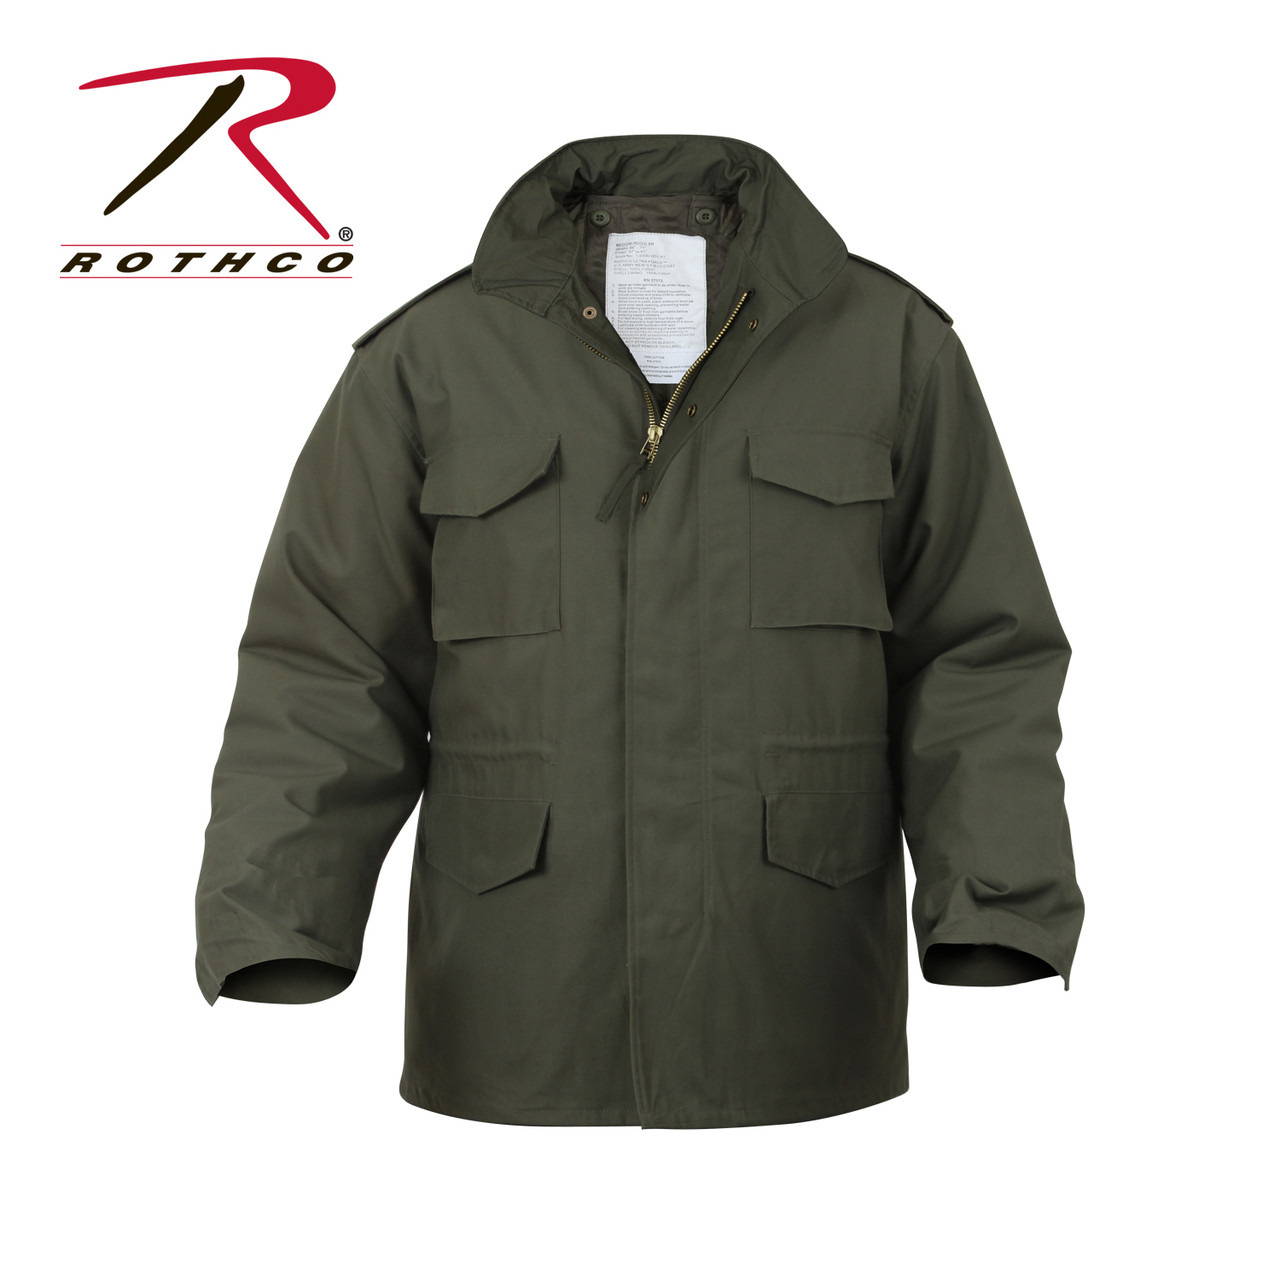 Rothco s M-65 Jackets are a classic piece of military outerwear. The jacket  features a8b496d0eff